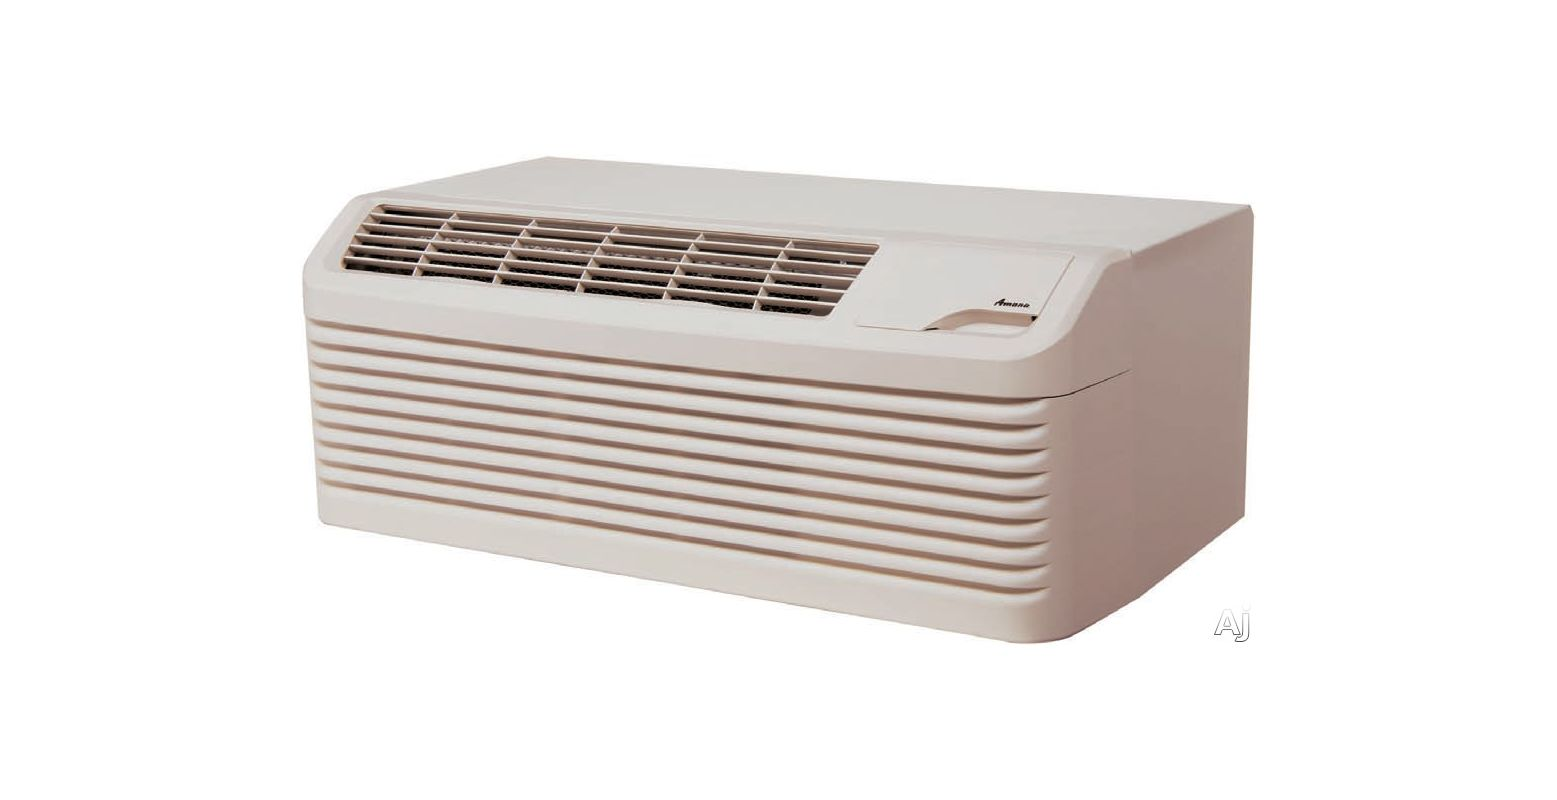 Amana PTC153G35CXXX 15,000 BTU Packaged Terminal Air Conditioner with 3.5 kW Ele photo